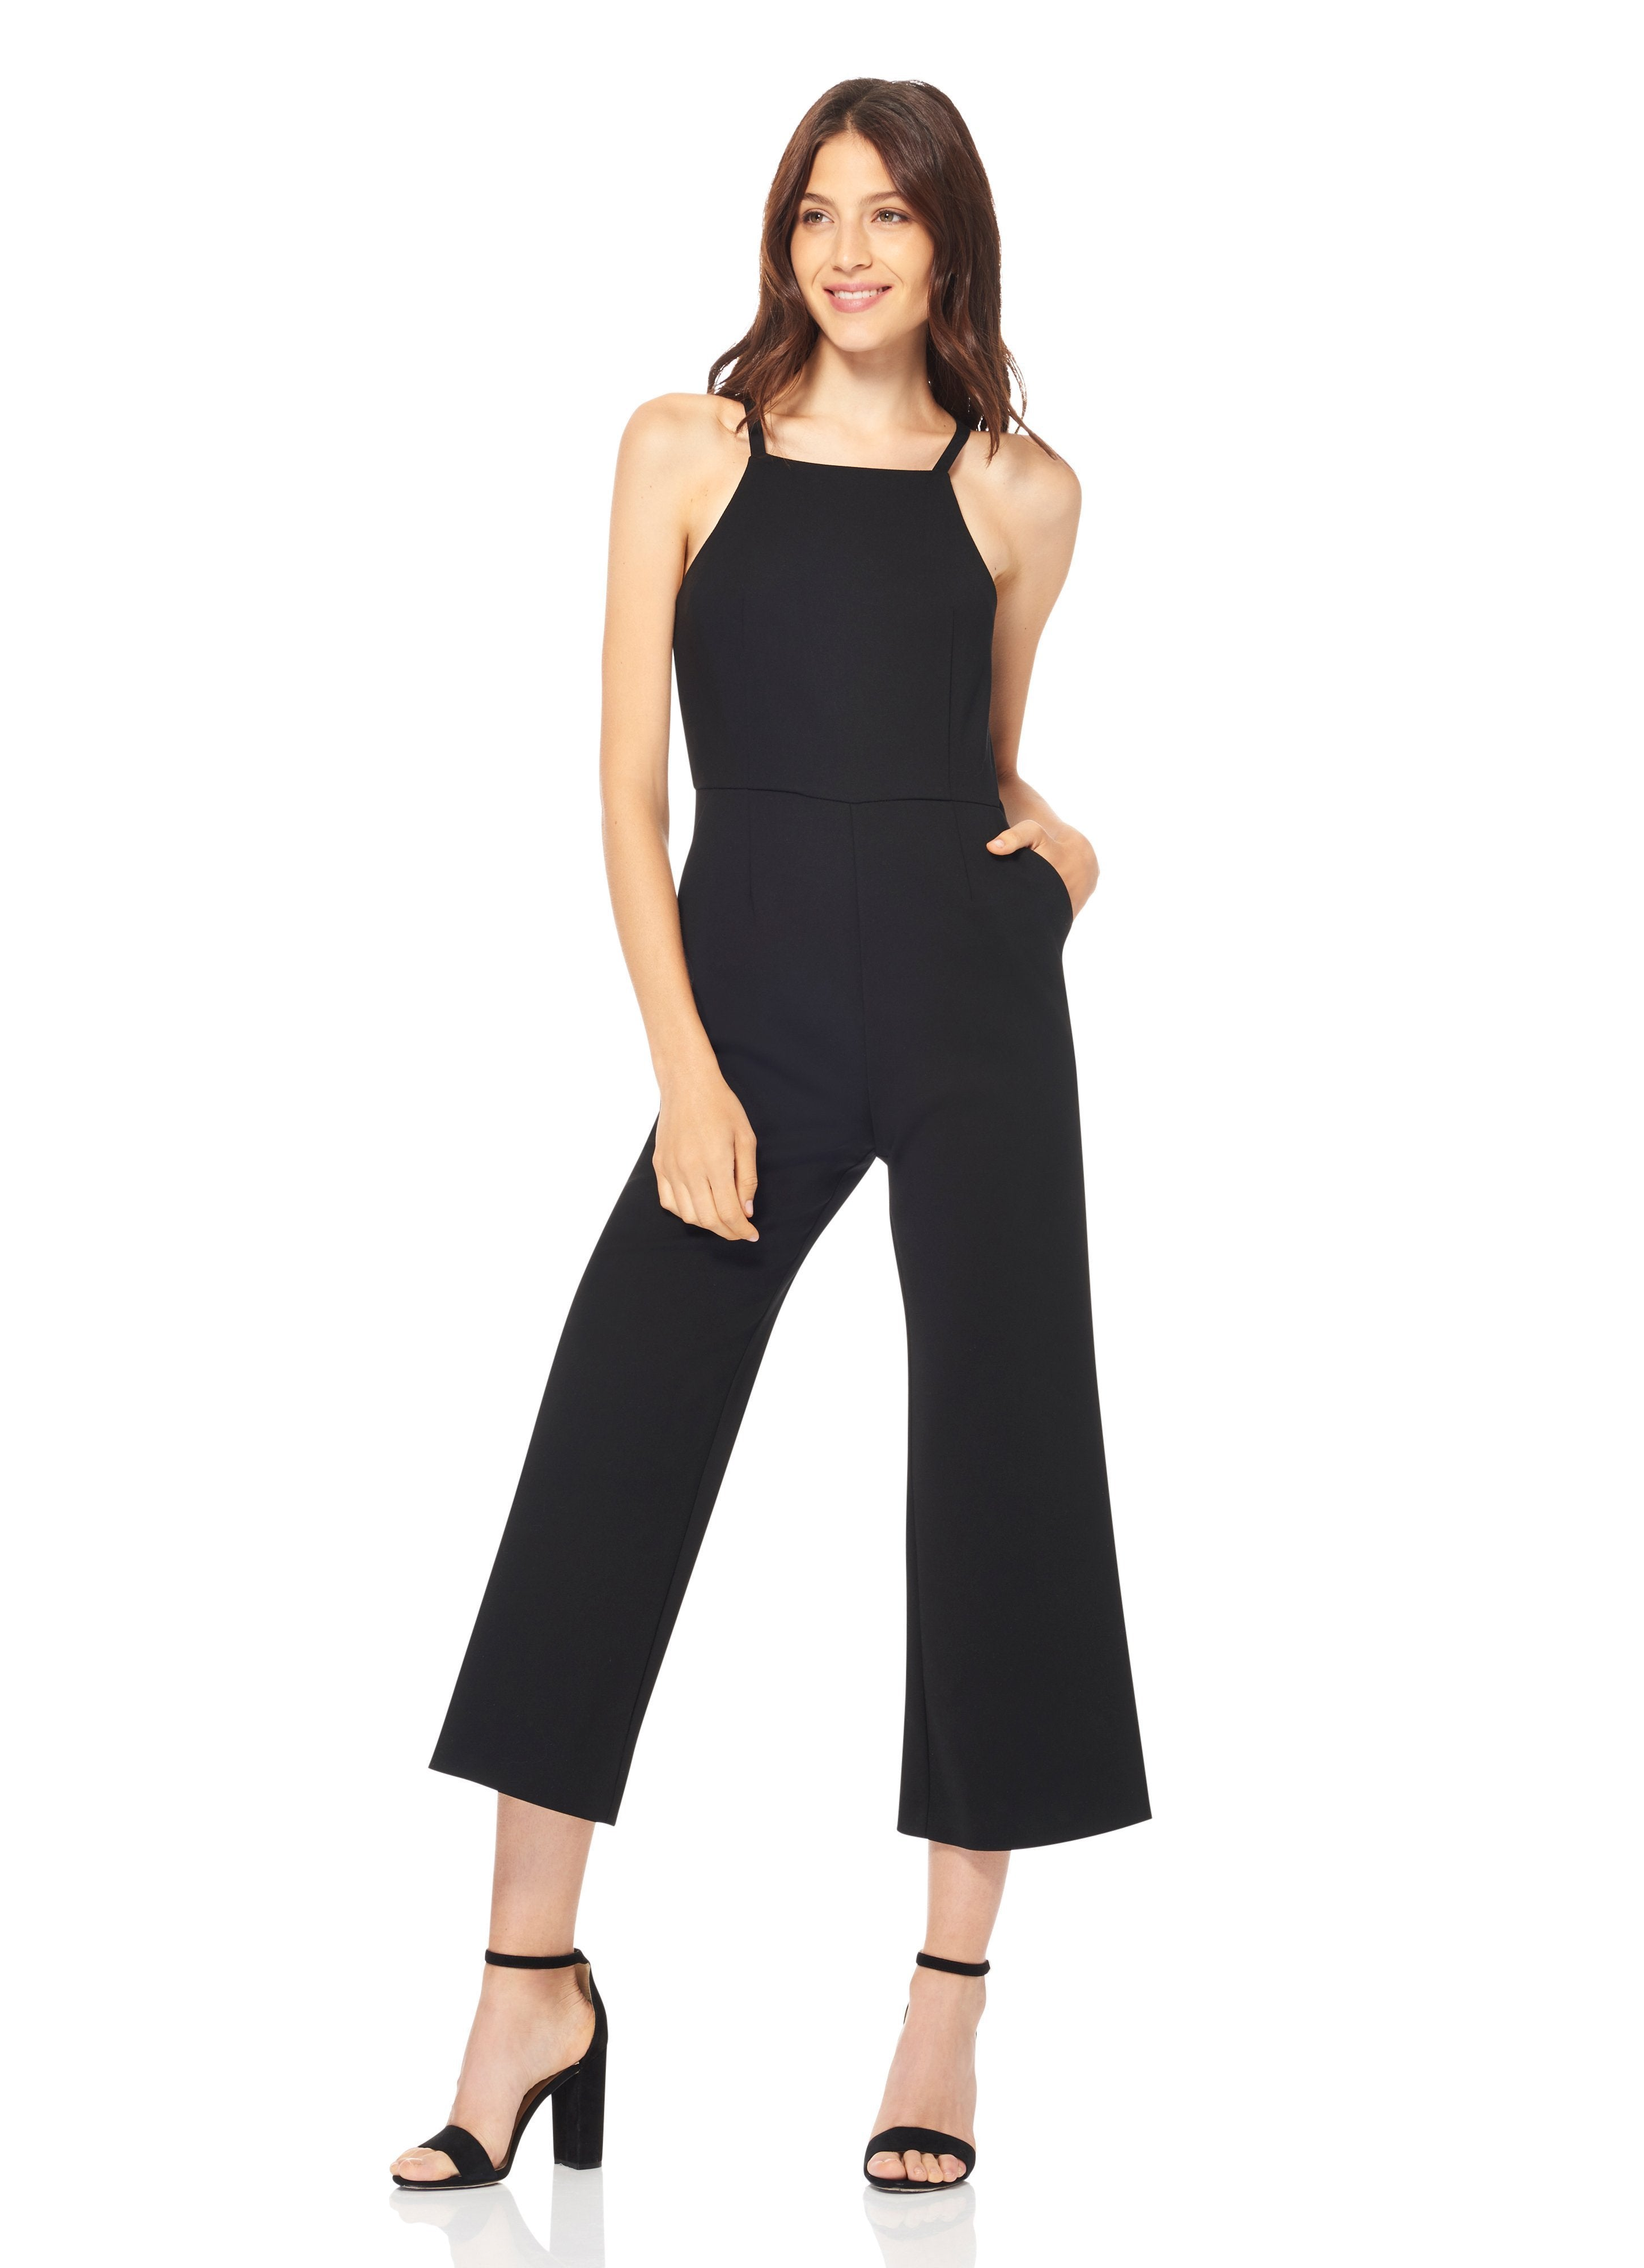 Black cotton poly blend jumpsuit with spaghetti straps and back pockets, found at Patricia in southern Pines, NC